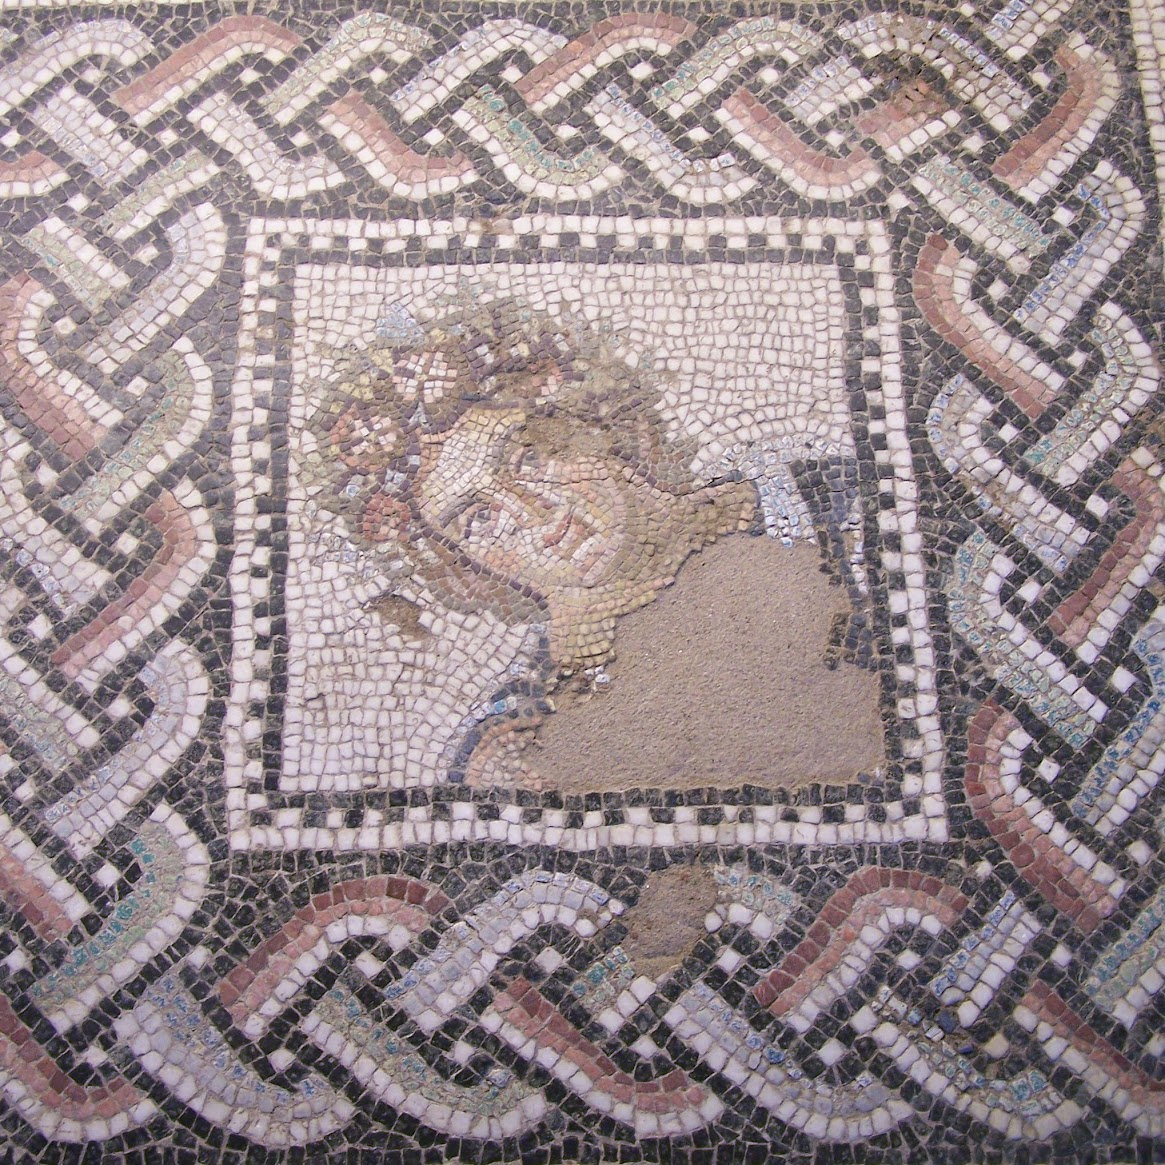 My Photos: Mosaics in the Archaeological Museum of Thessaloniki